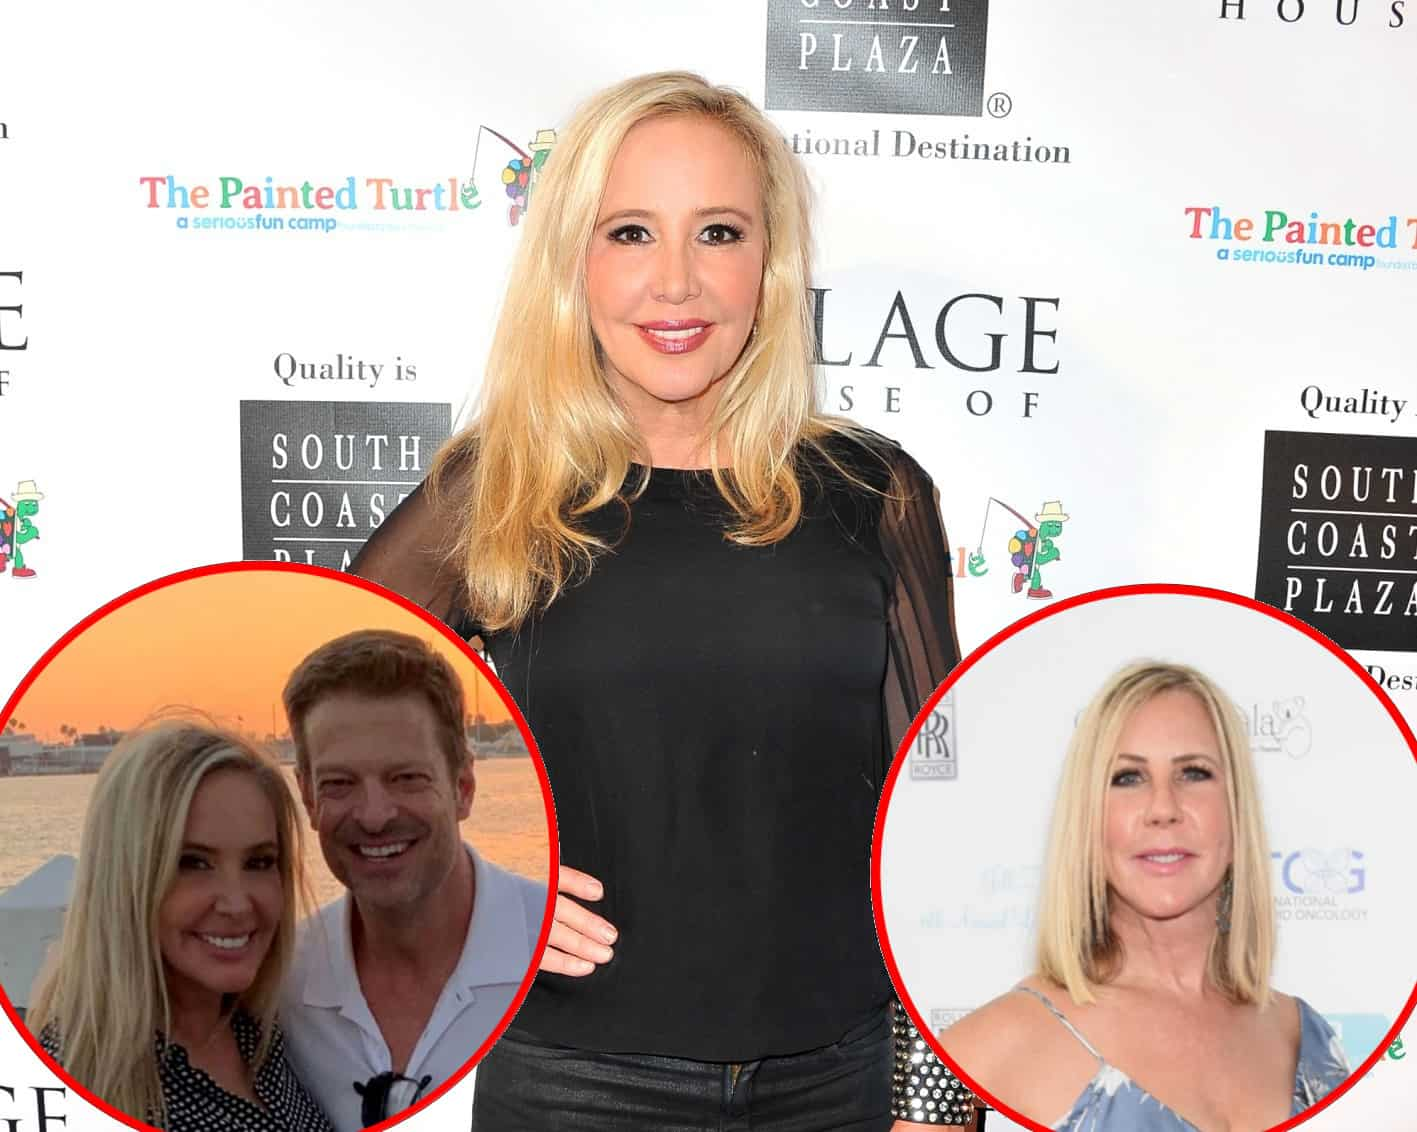 RHOC's Shannon Beador Confirms She Has a New Boyfriend and Addresses Vicki Gunvalson's Demotion, Plus She Dishes on 40-Pound Weight Loss